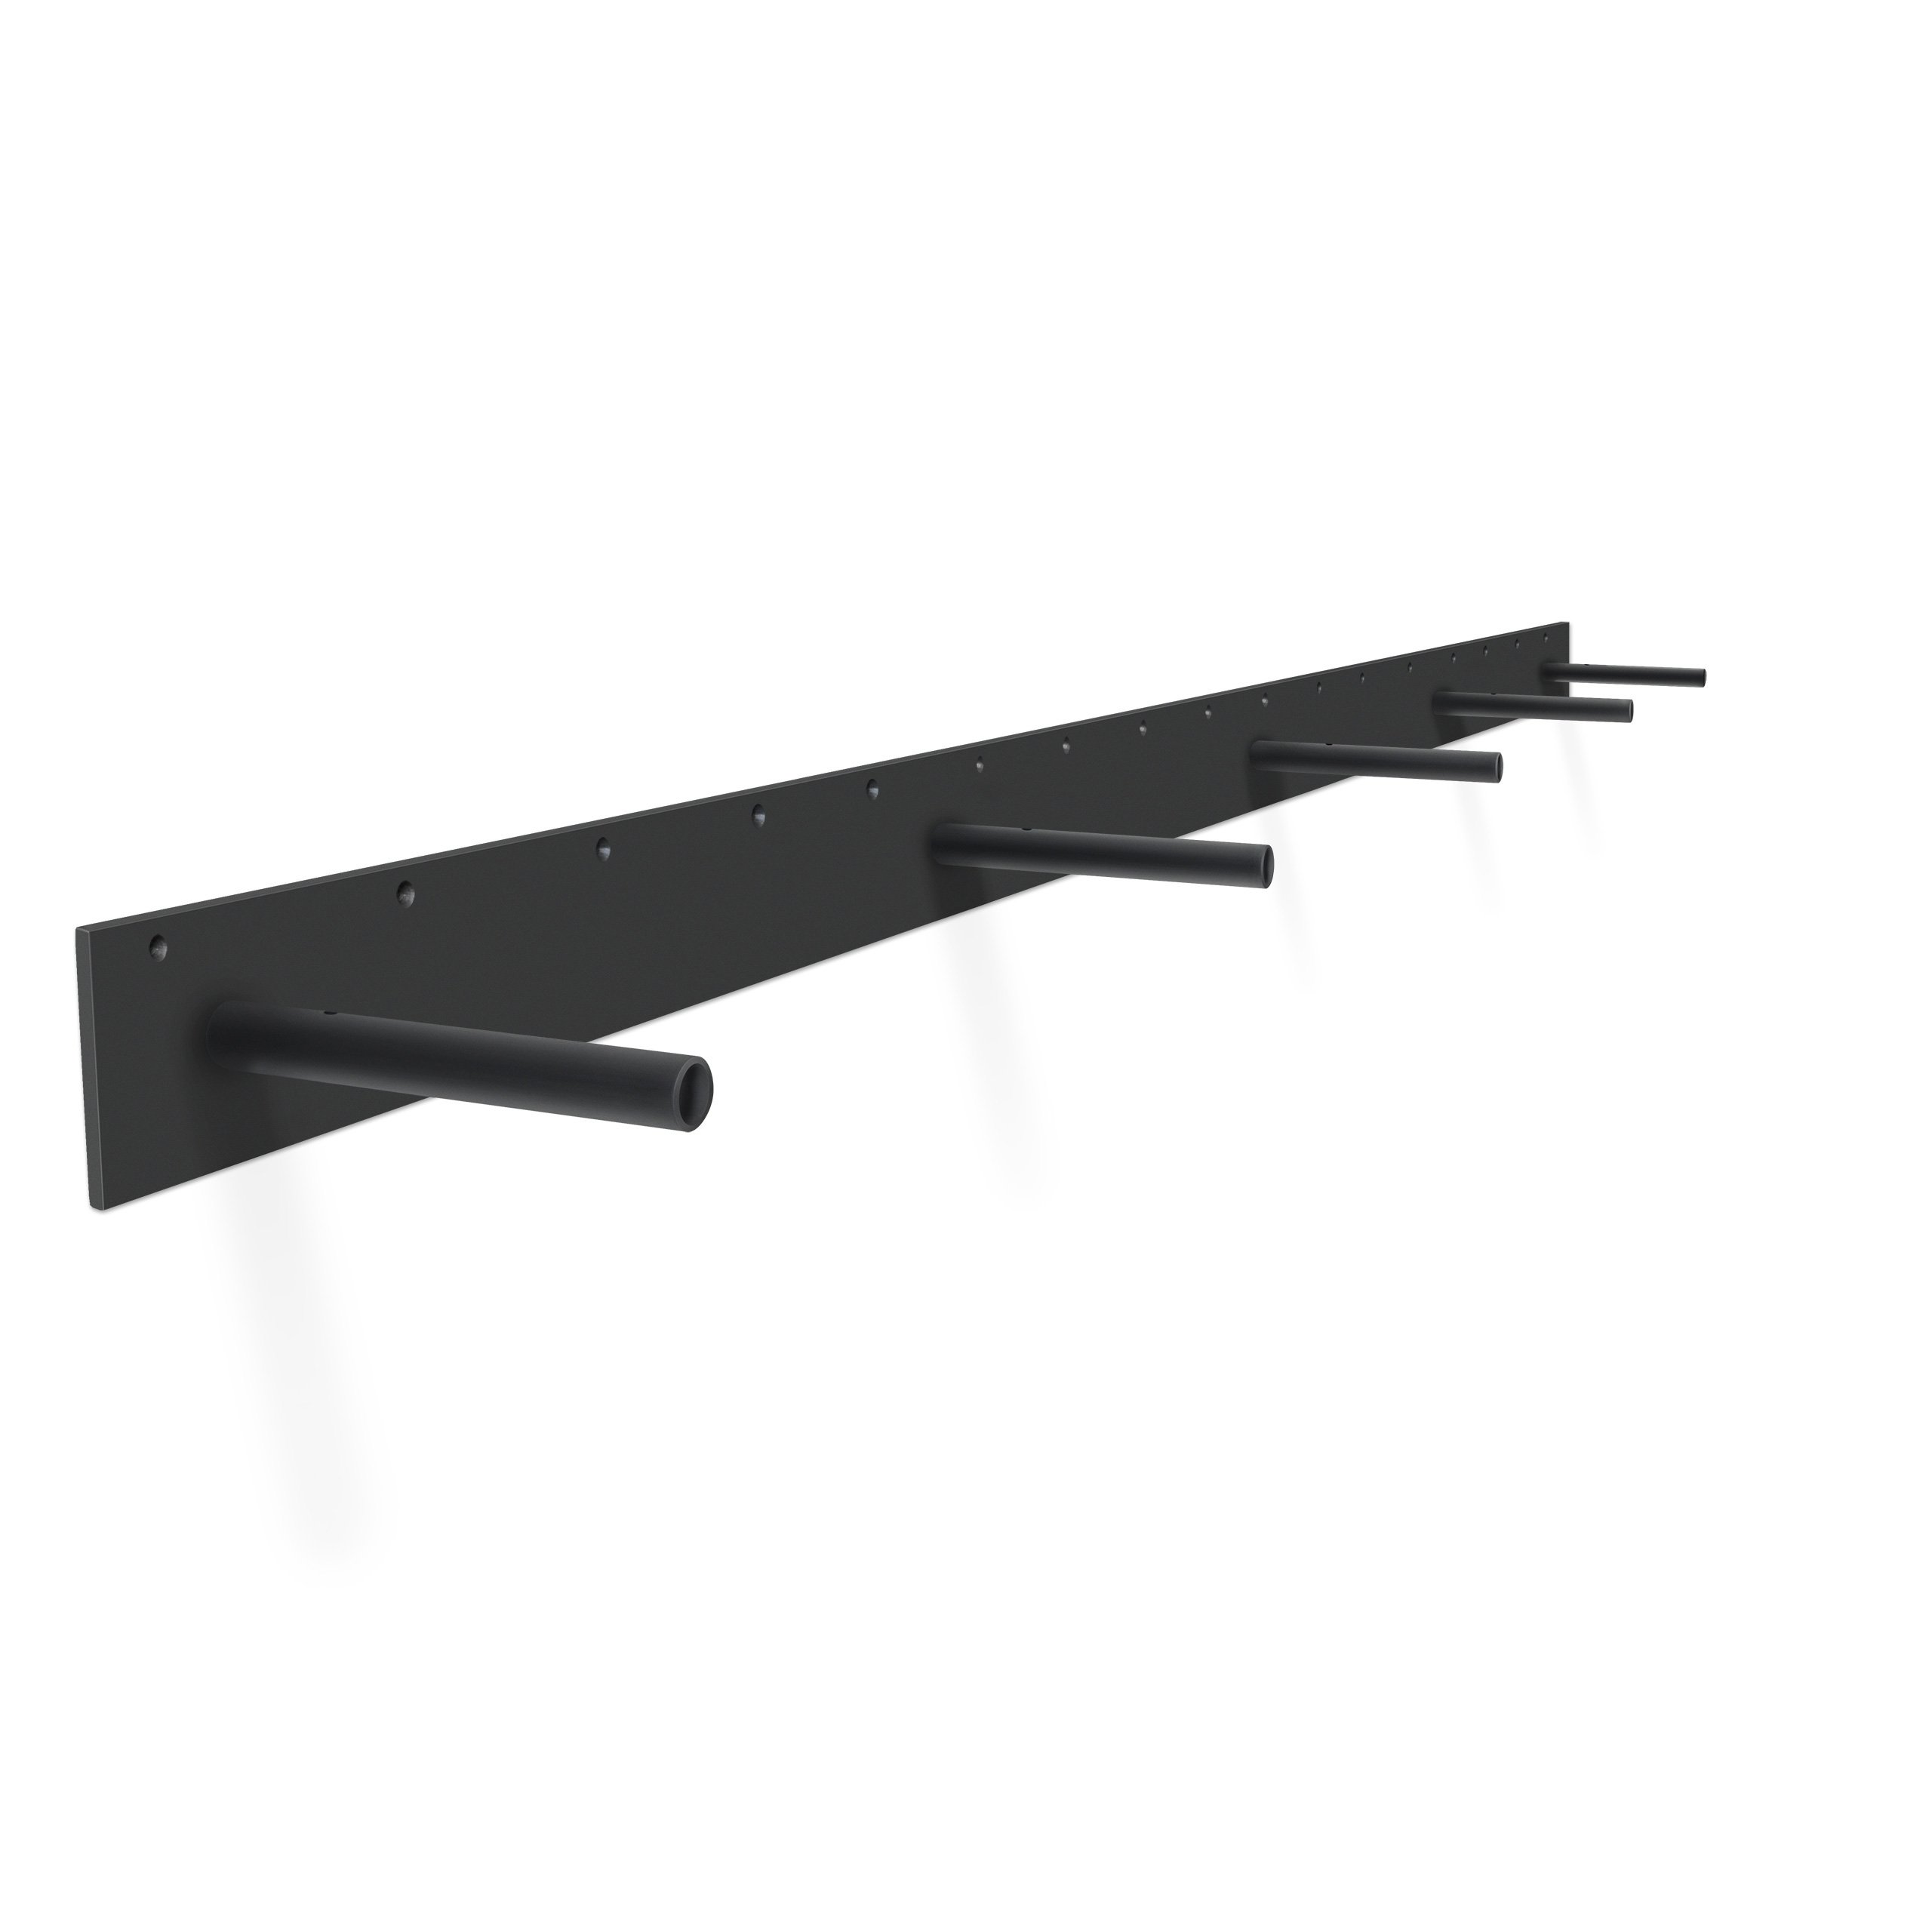 70'' Long x 3'' Thick Super Duty Steel Hidden Mantel Hardware - for 72 to 81 inch Mantel - Manufactured in USA by Shelfology